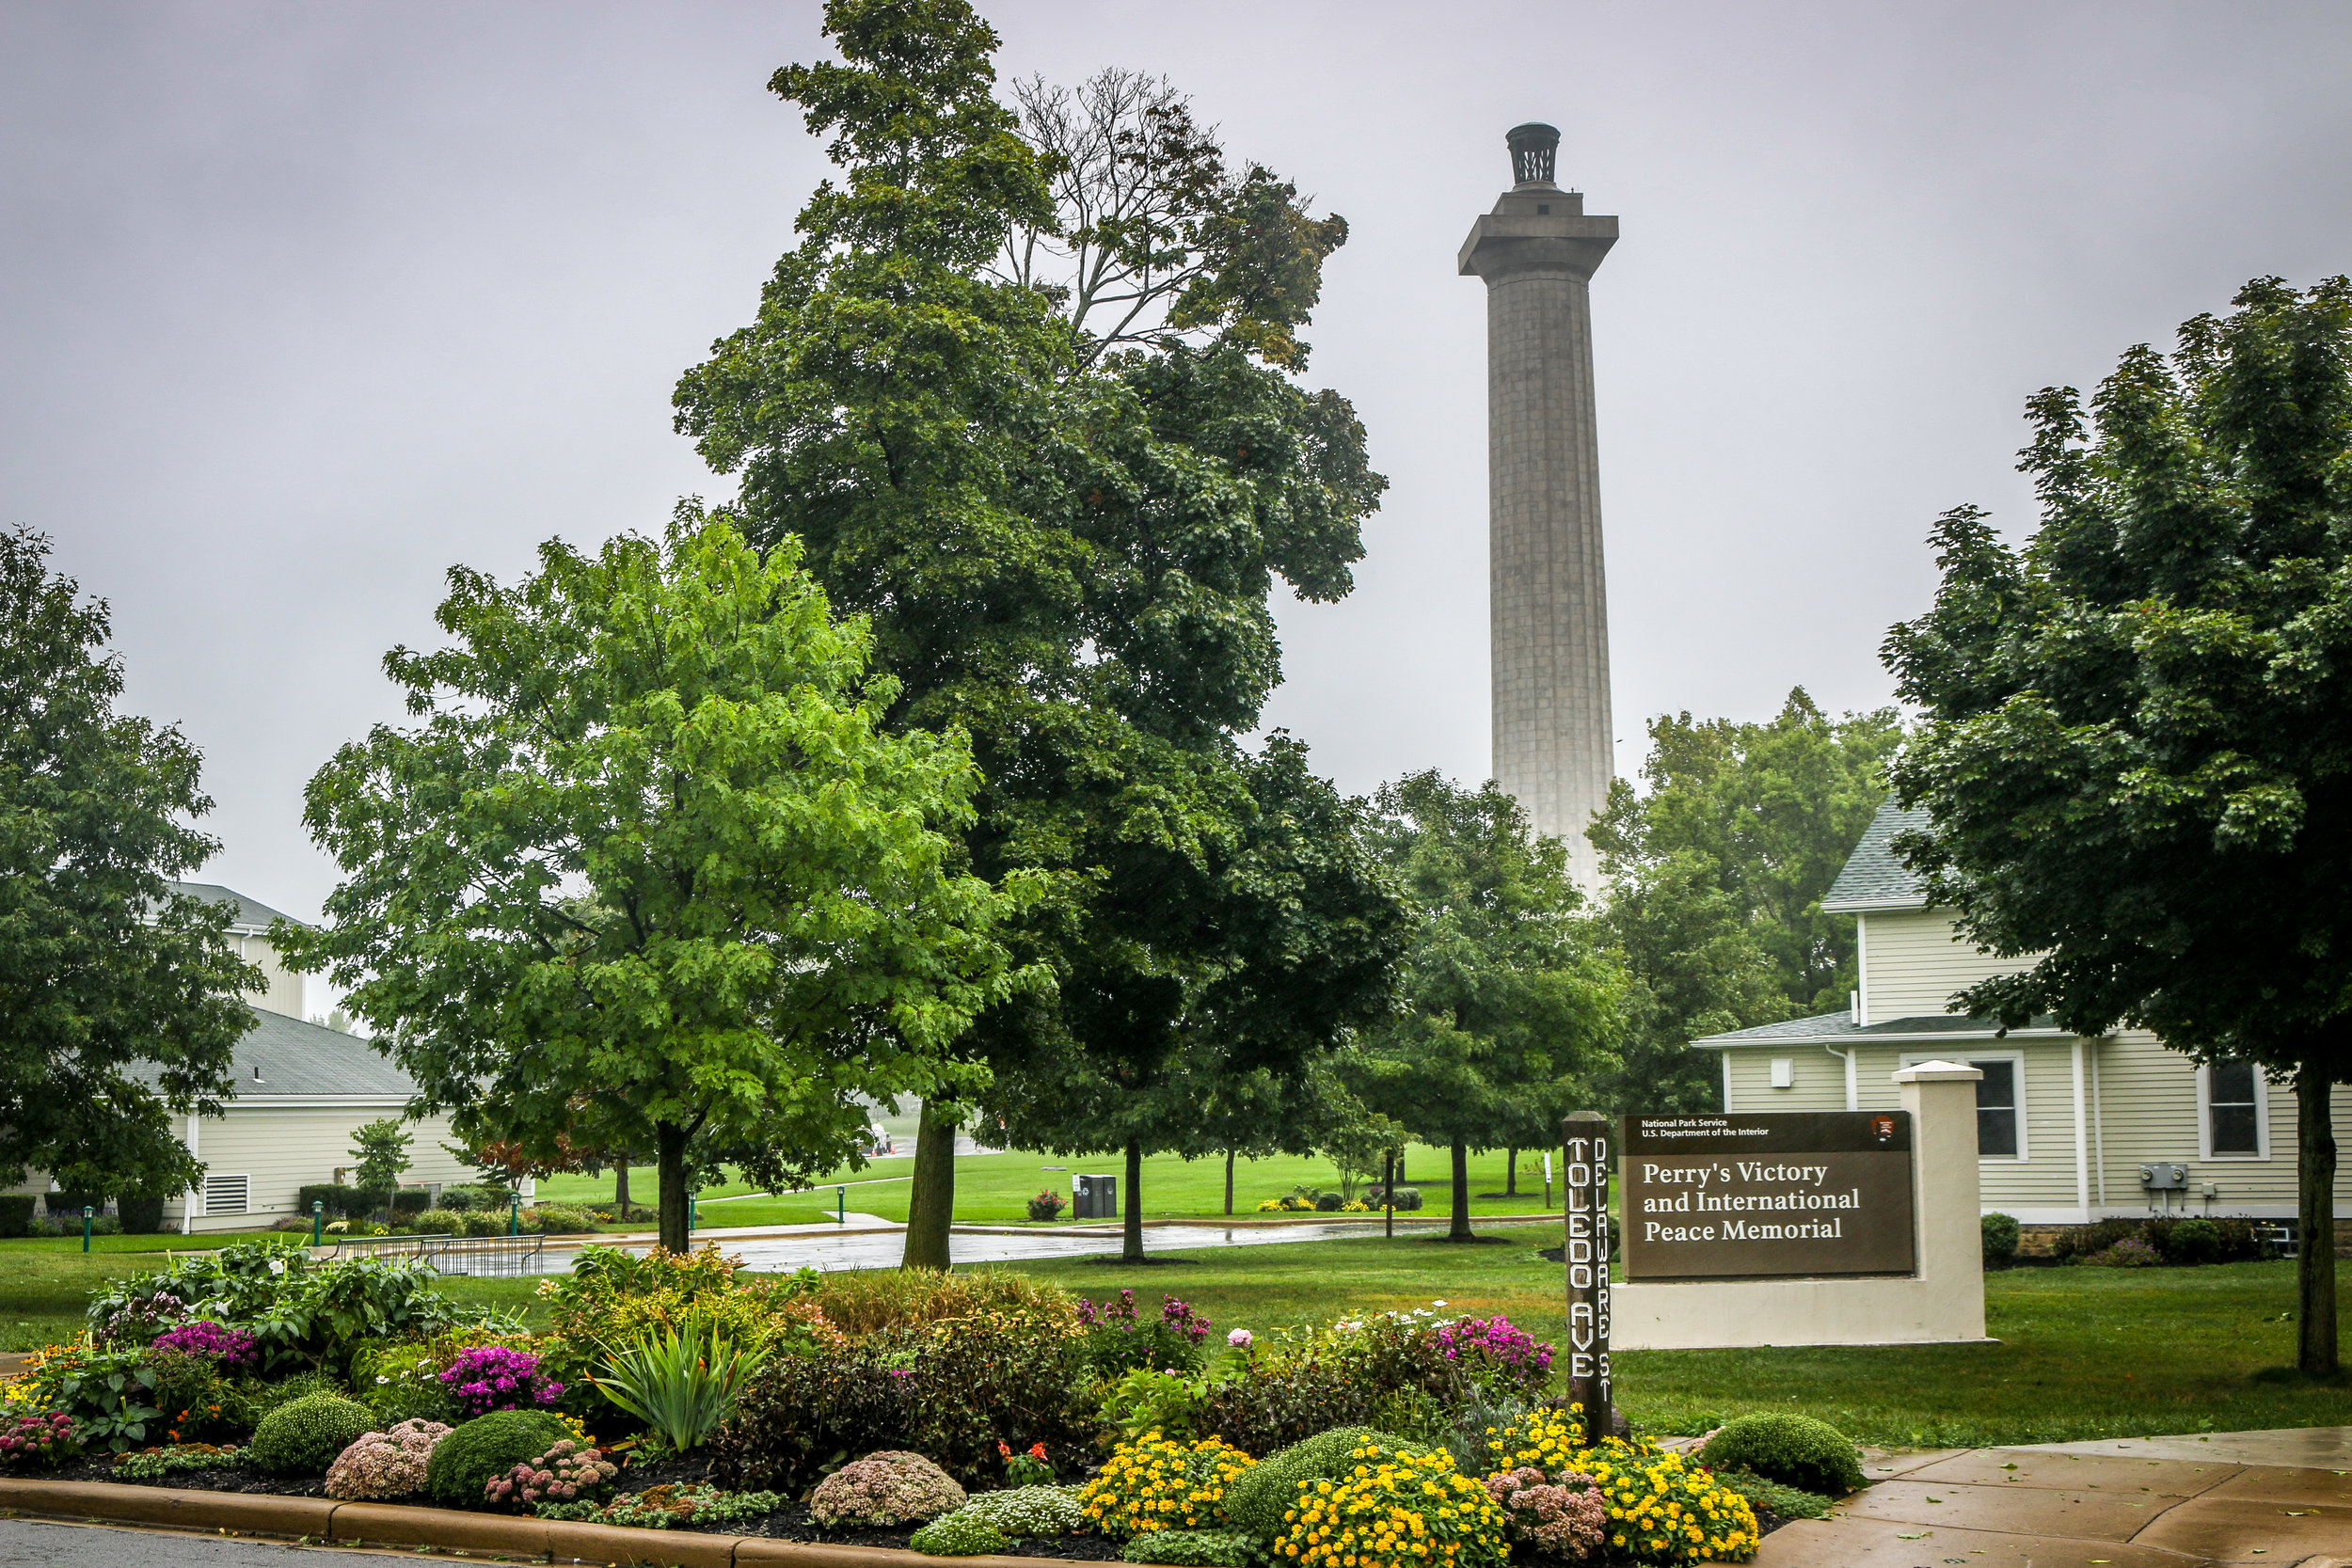 Perry's Victory Memorial